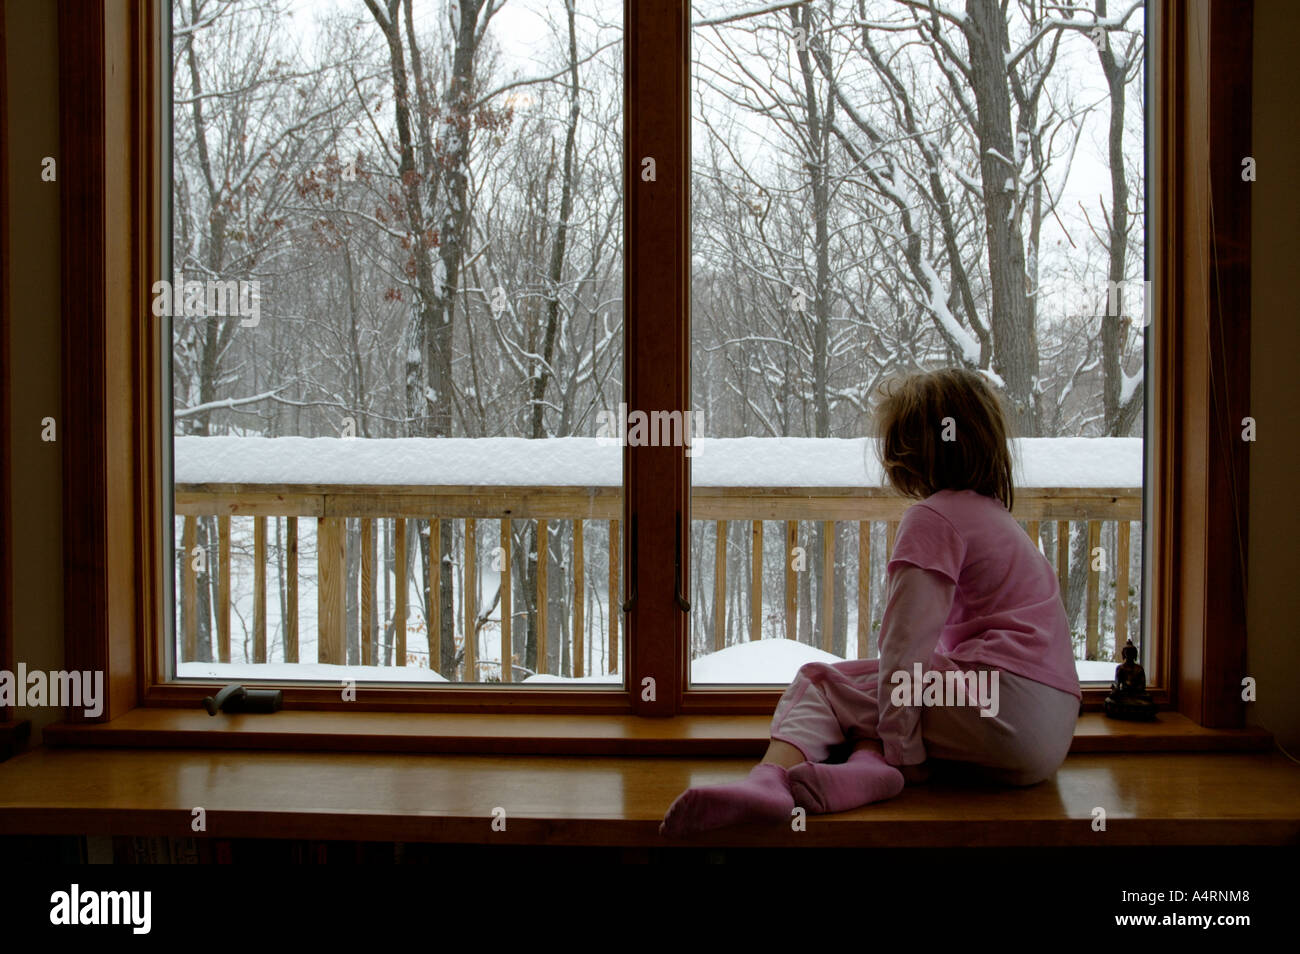 Lonely young girl looks out window on a gray snowy day - Stock Image